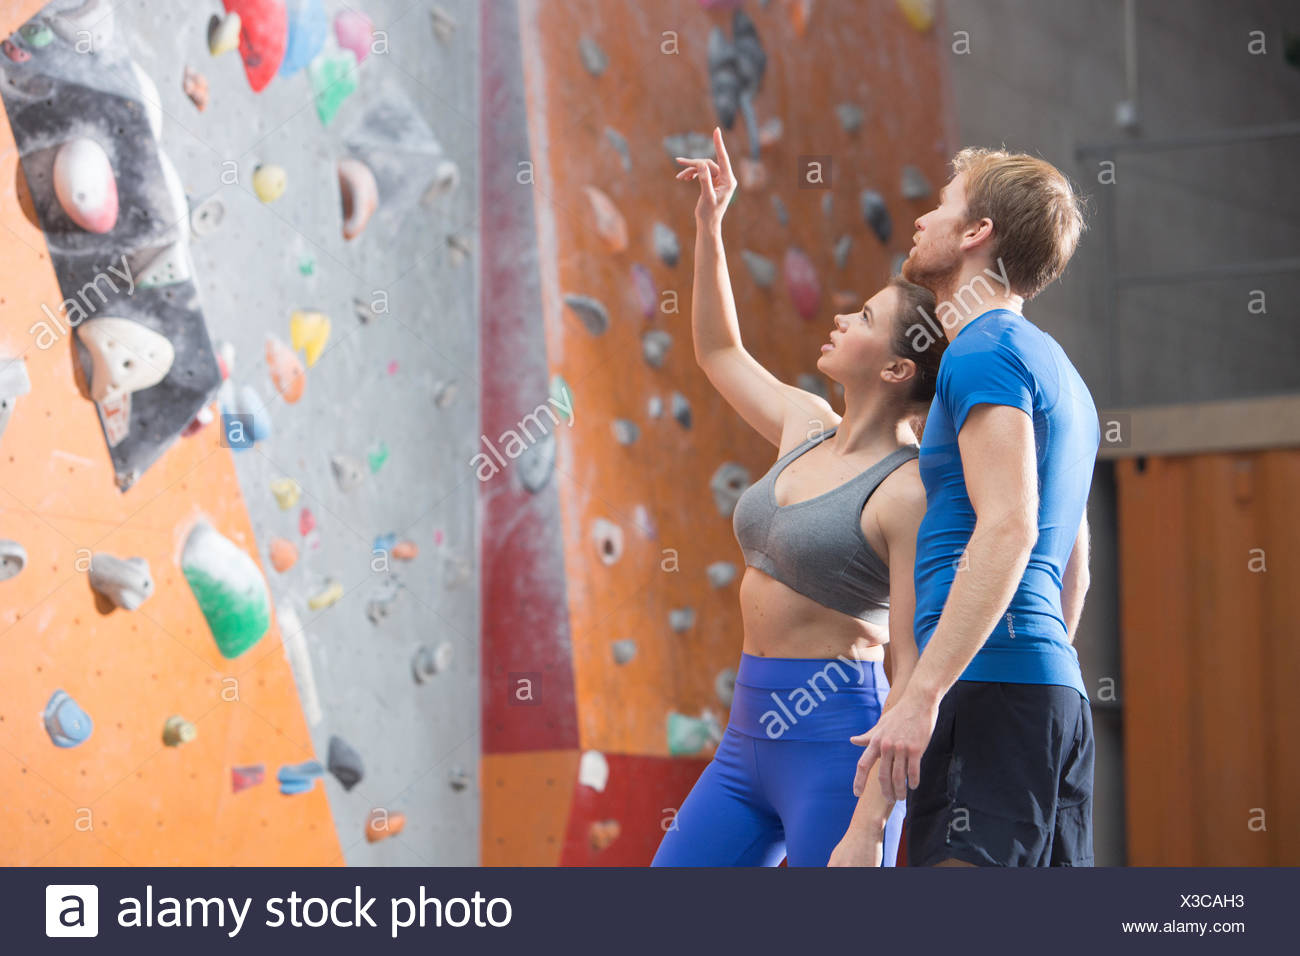 Man and woman discussing by climbing wall in crossfit gym - Stock Image